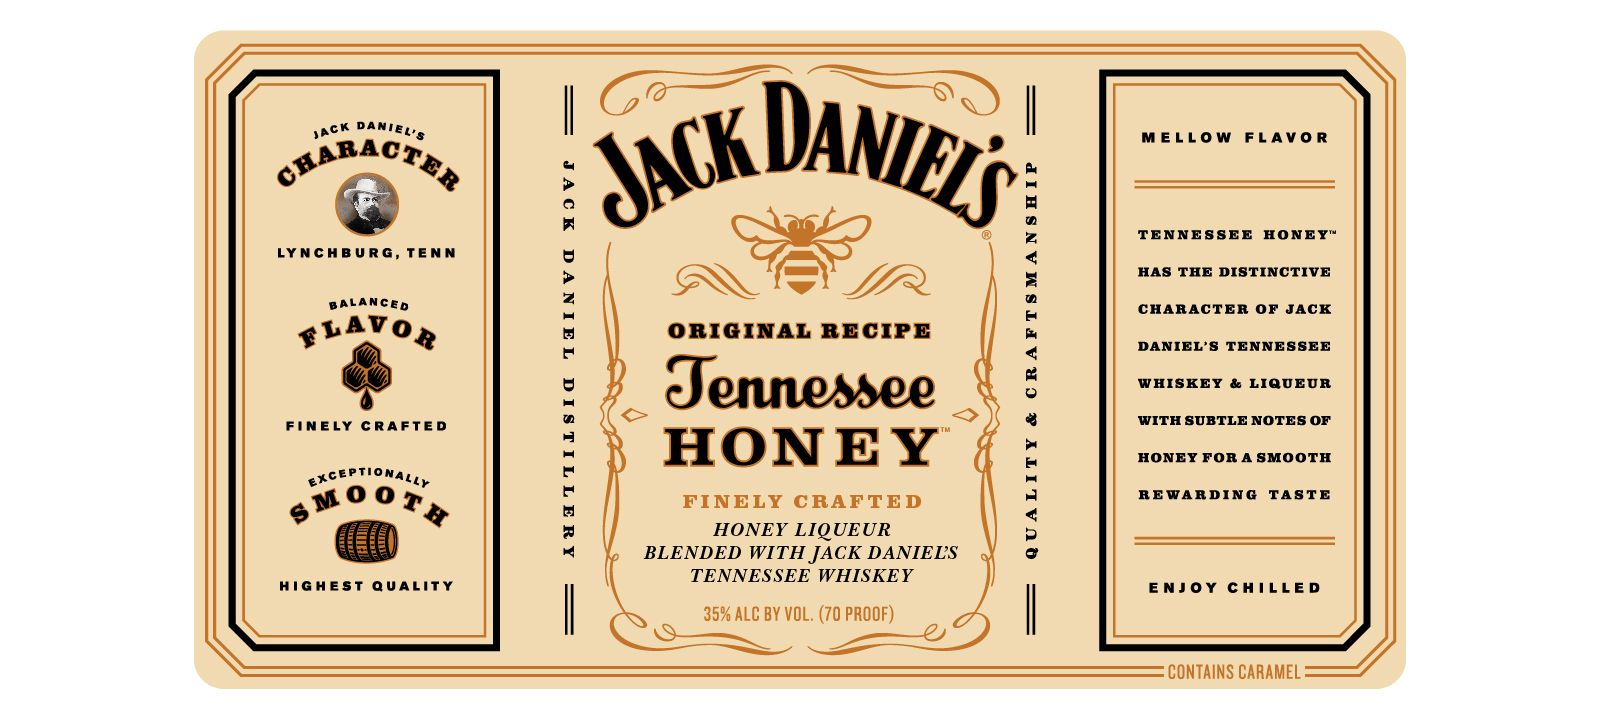 It is an image of Sly Jack Daniels Honey Label